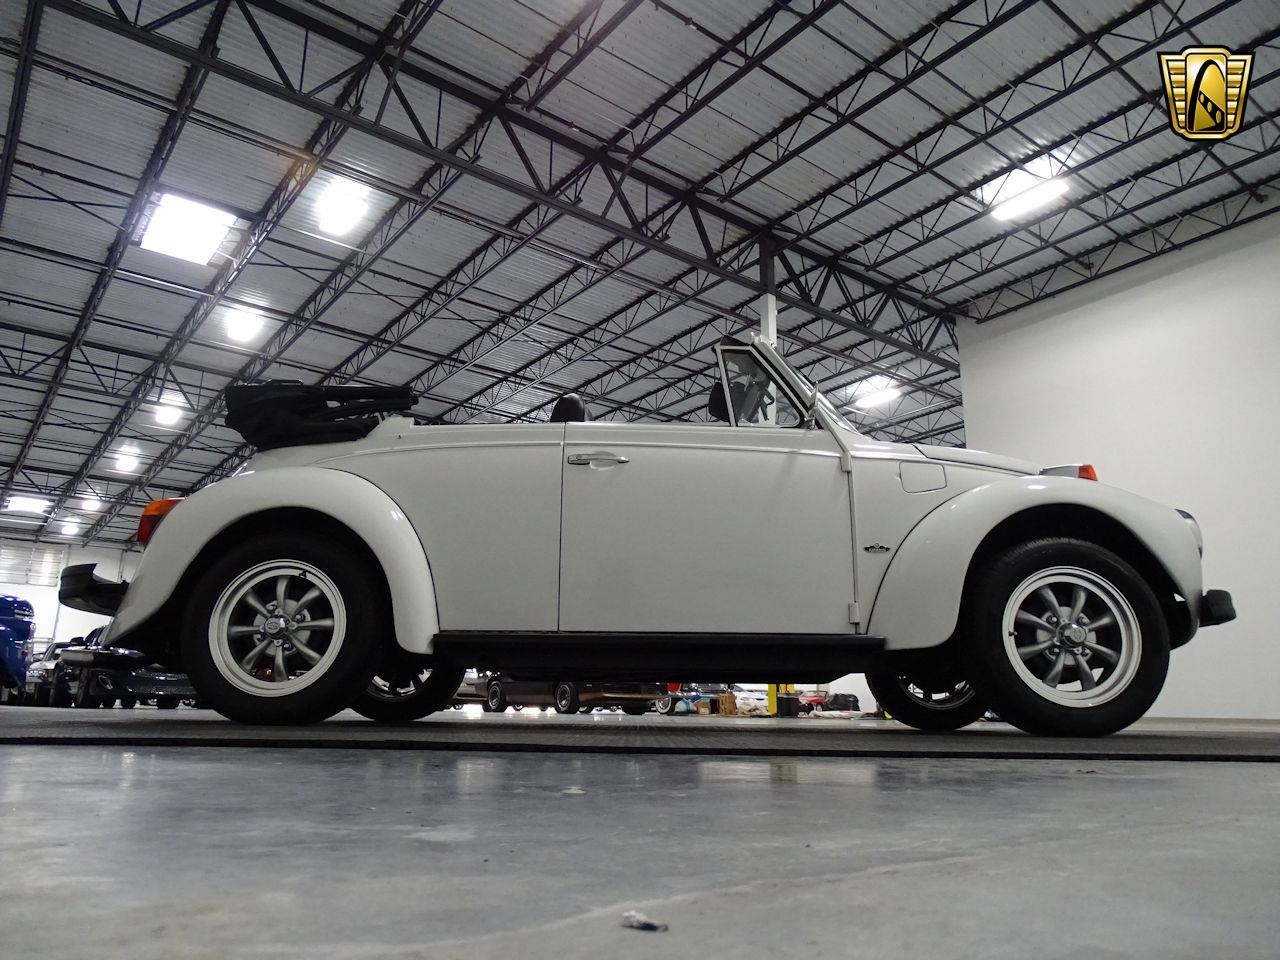 Large Picture of '78 Volkswagen Super Beetle located in Texas - $17,595.00 Offered by Gateway Classic Cars - Houston - LGSK